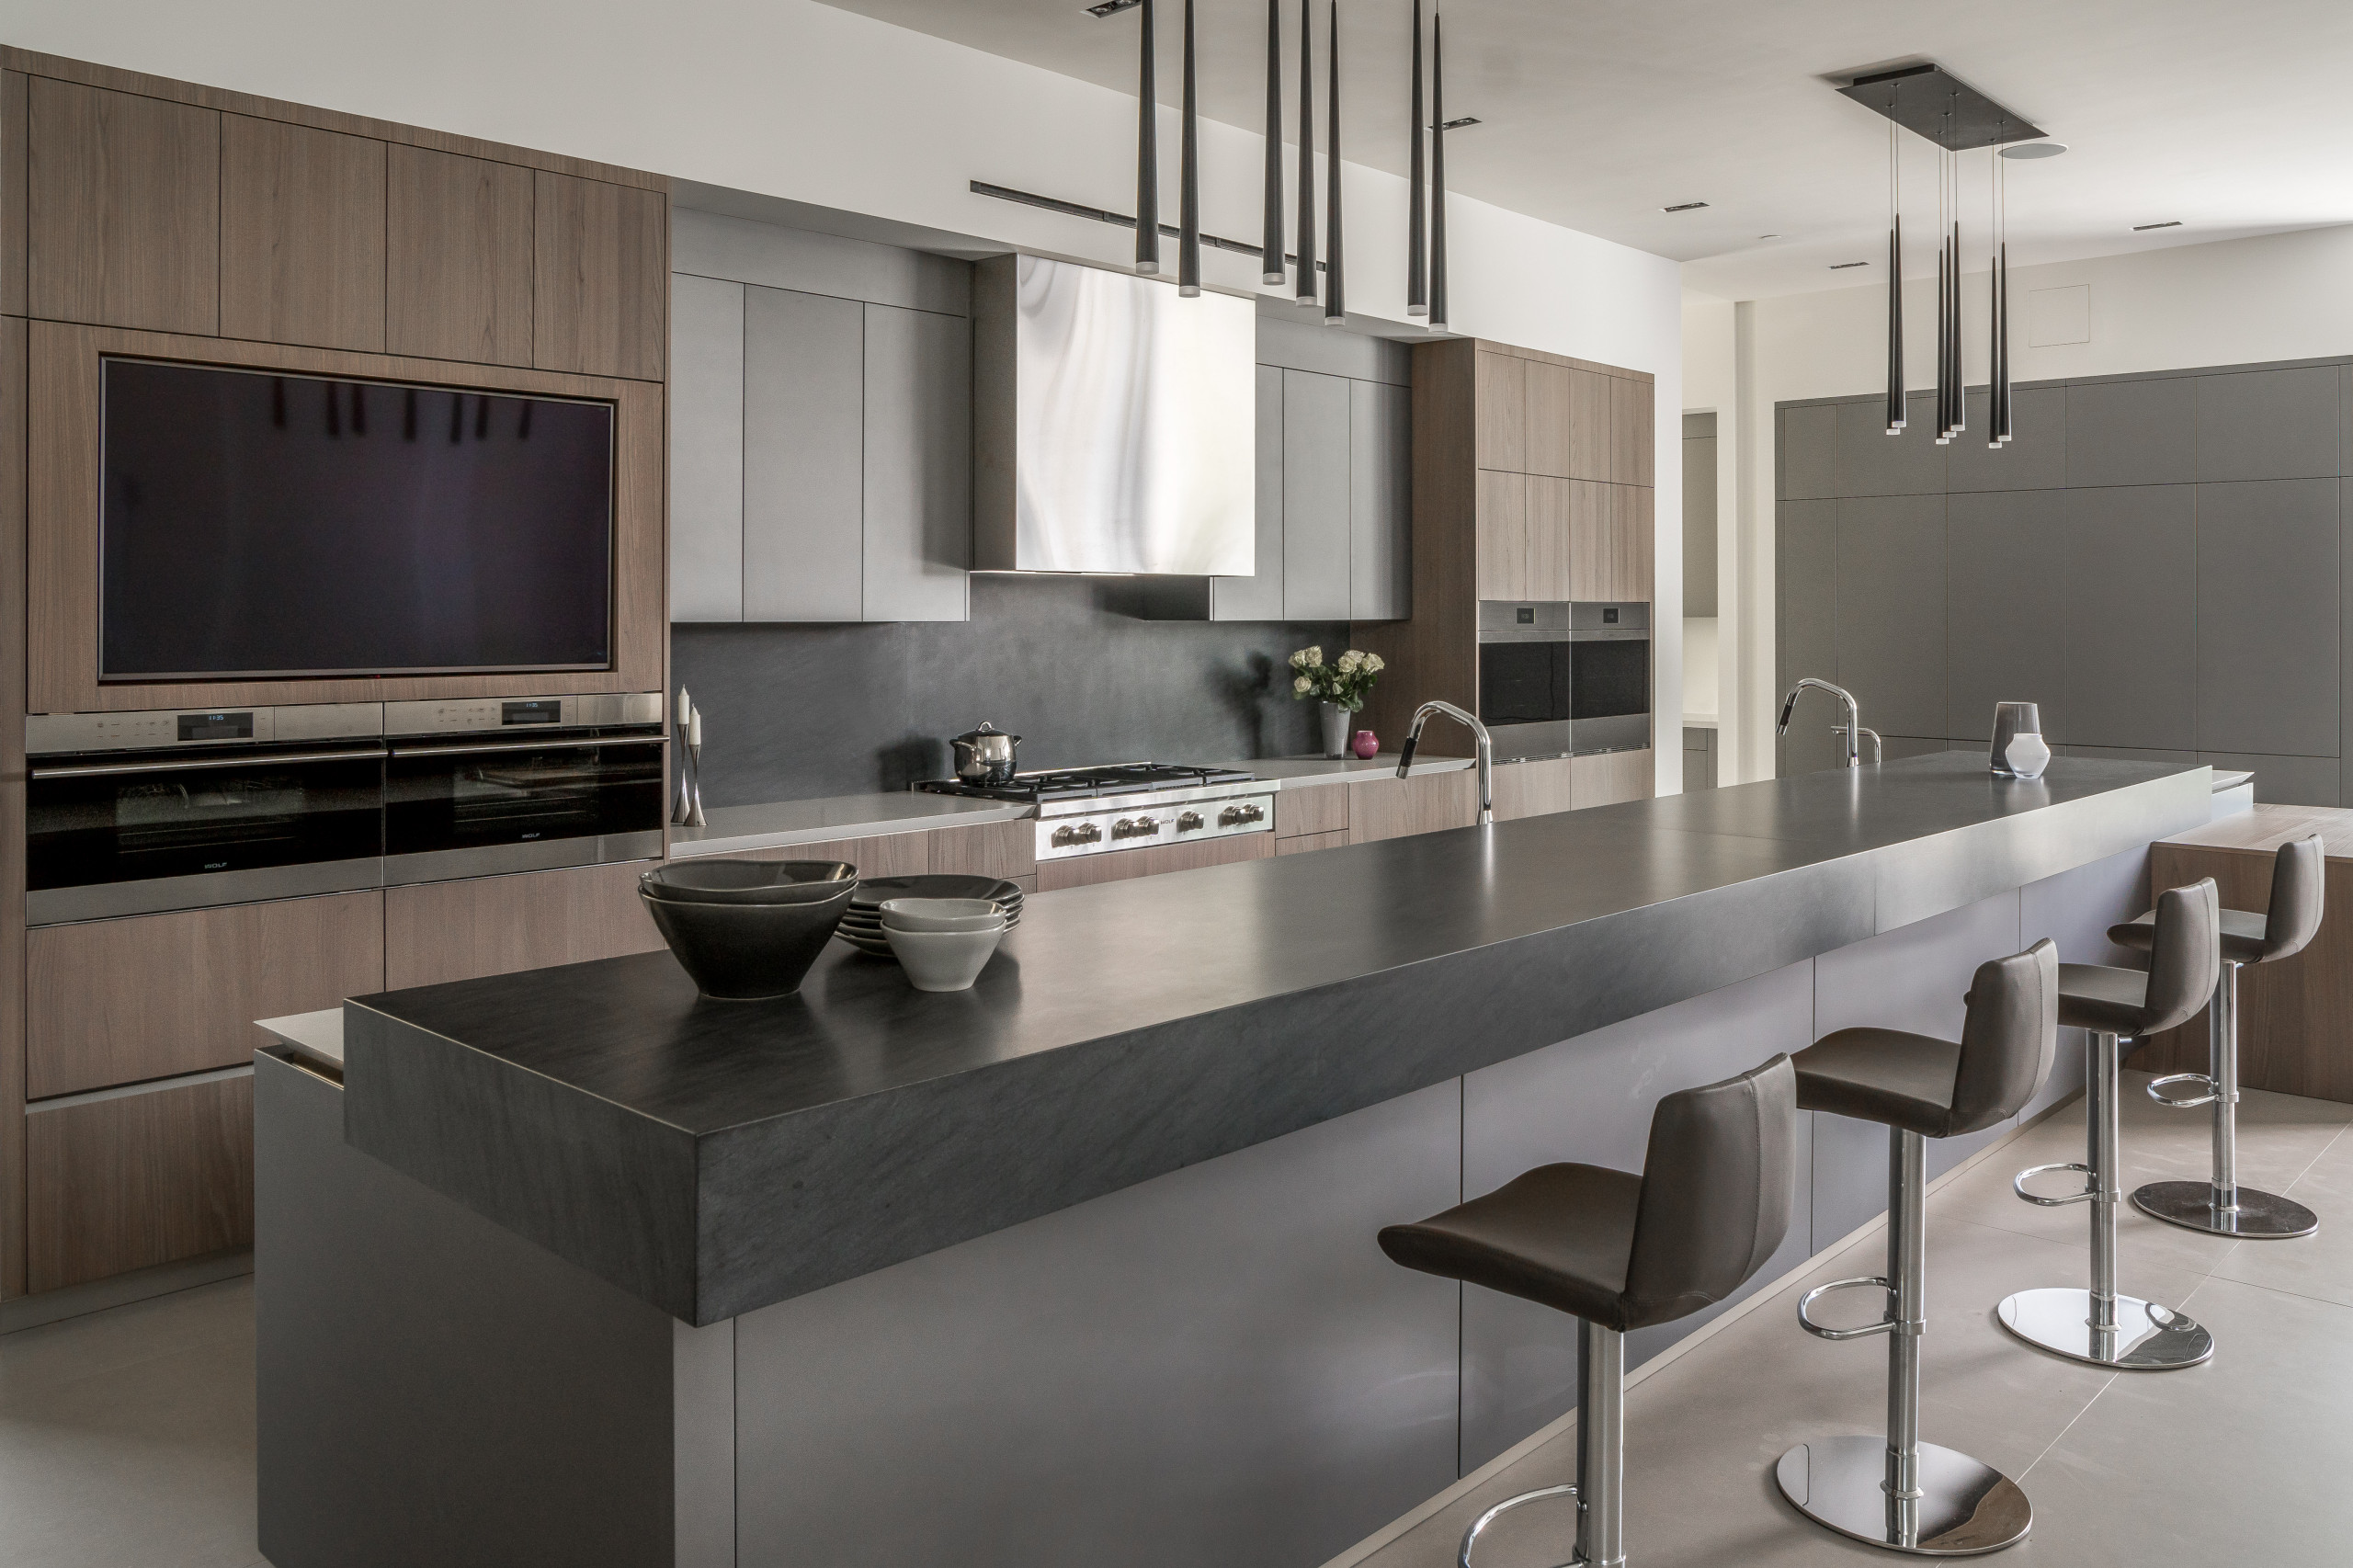 75 Beautiful Kitchen With Black Backsplash And Gray Countertops Pictures Ideas April 2021 Houzz